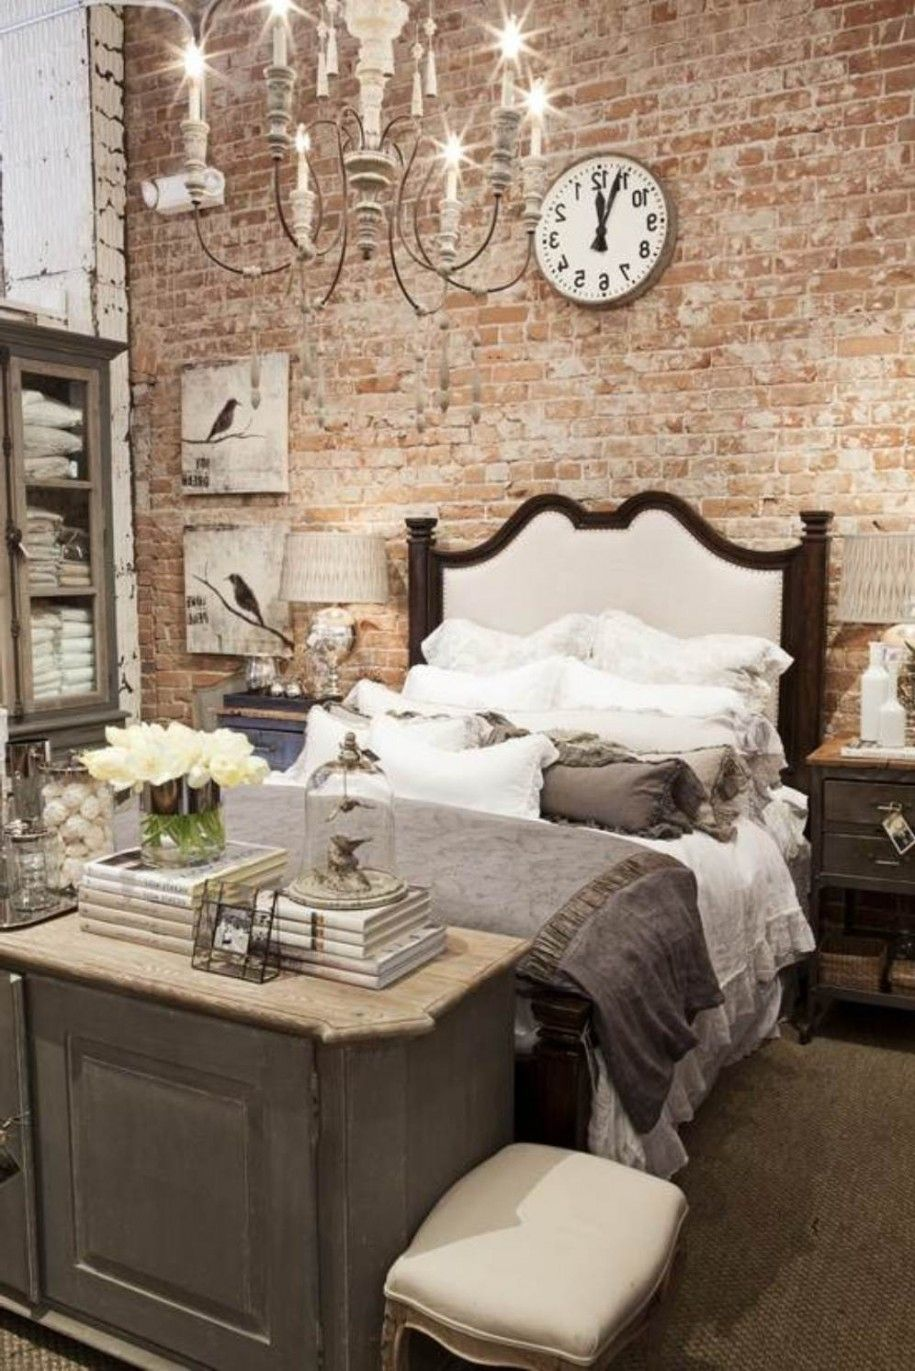 Most Romantic Bedroom Decor: Romantic Bedroom Decorating Ideas